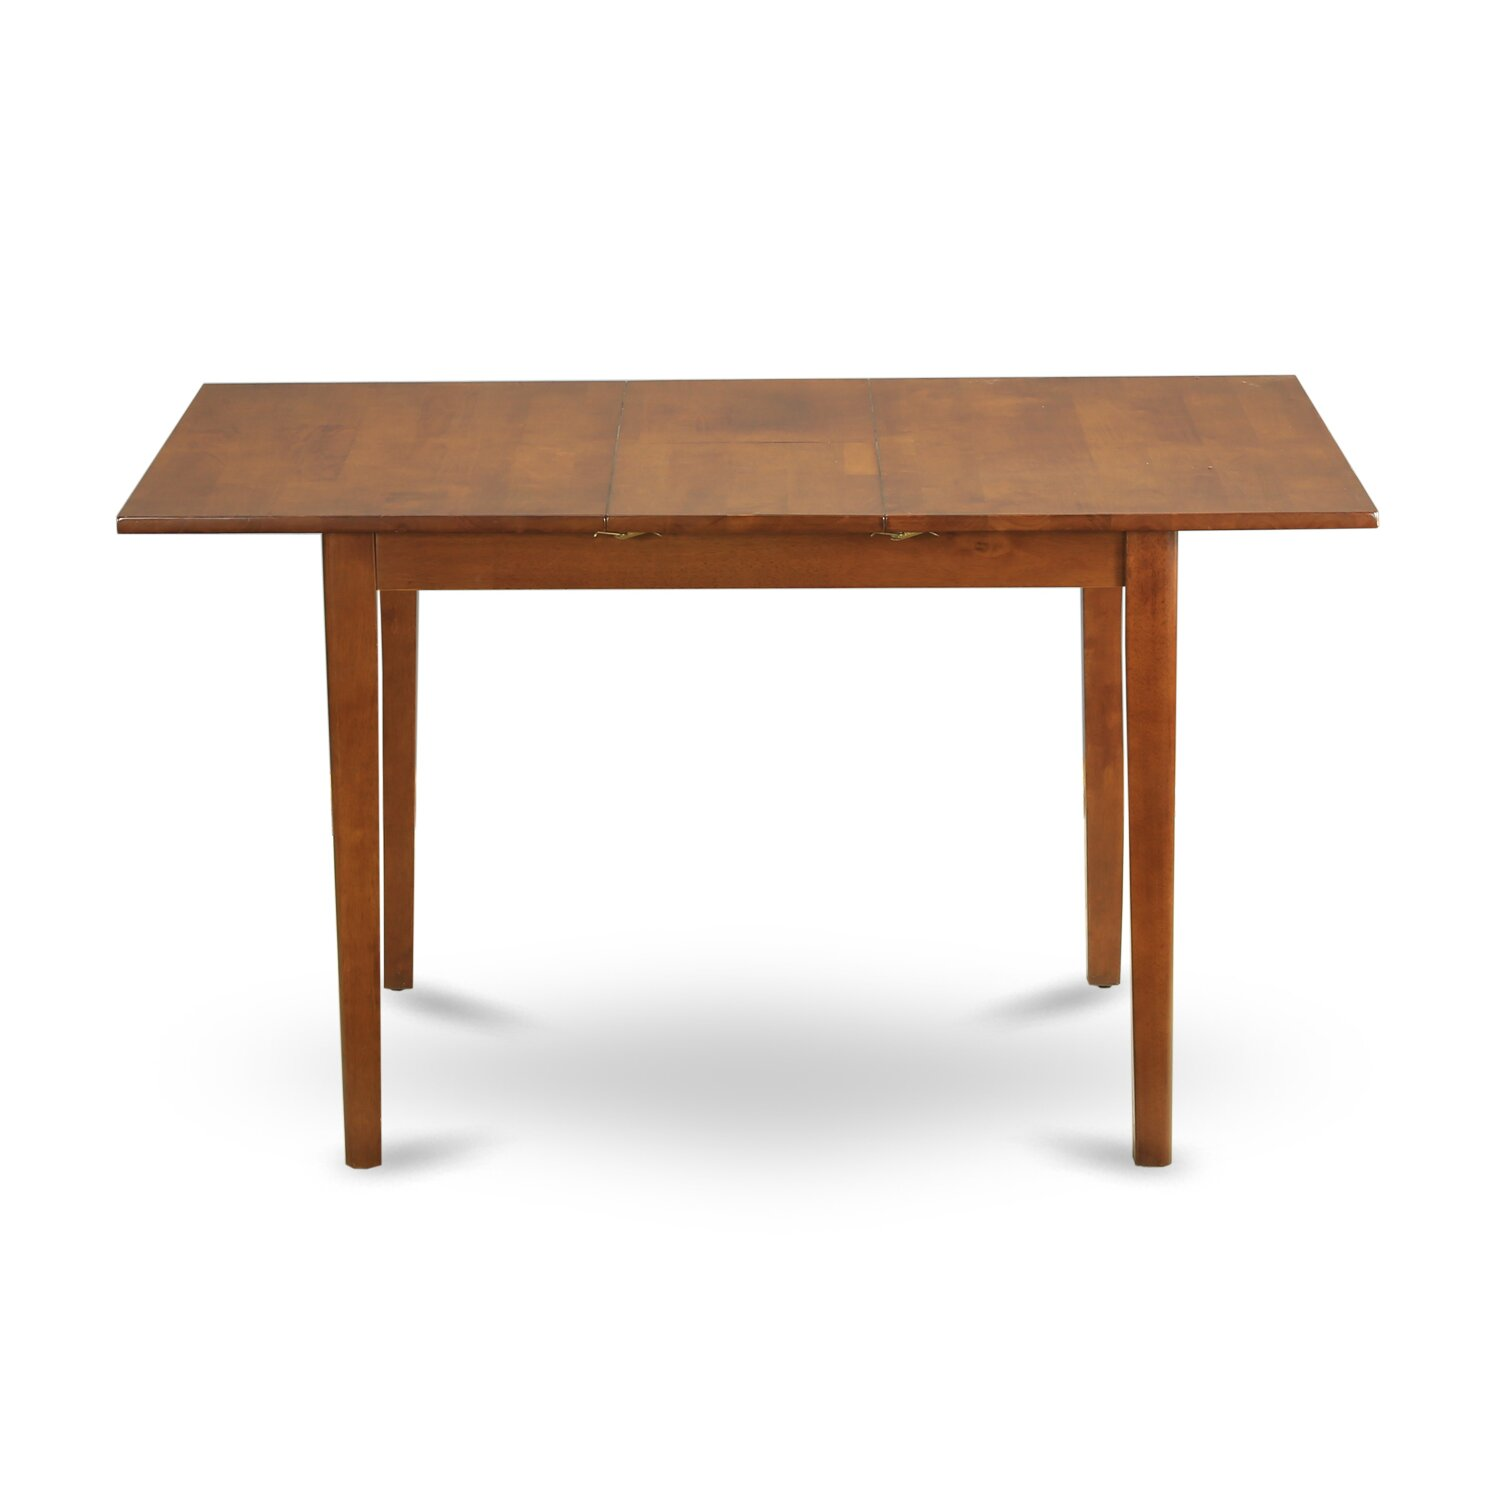 wooden importers milan dining extendable table reviews wayfair. Black Bedroom Furniture Sets. Home Design Ideas